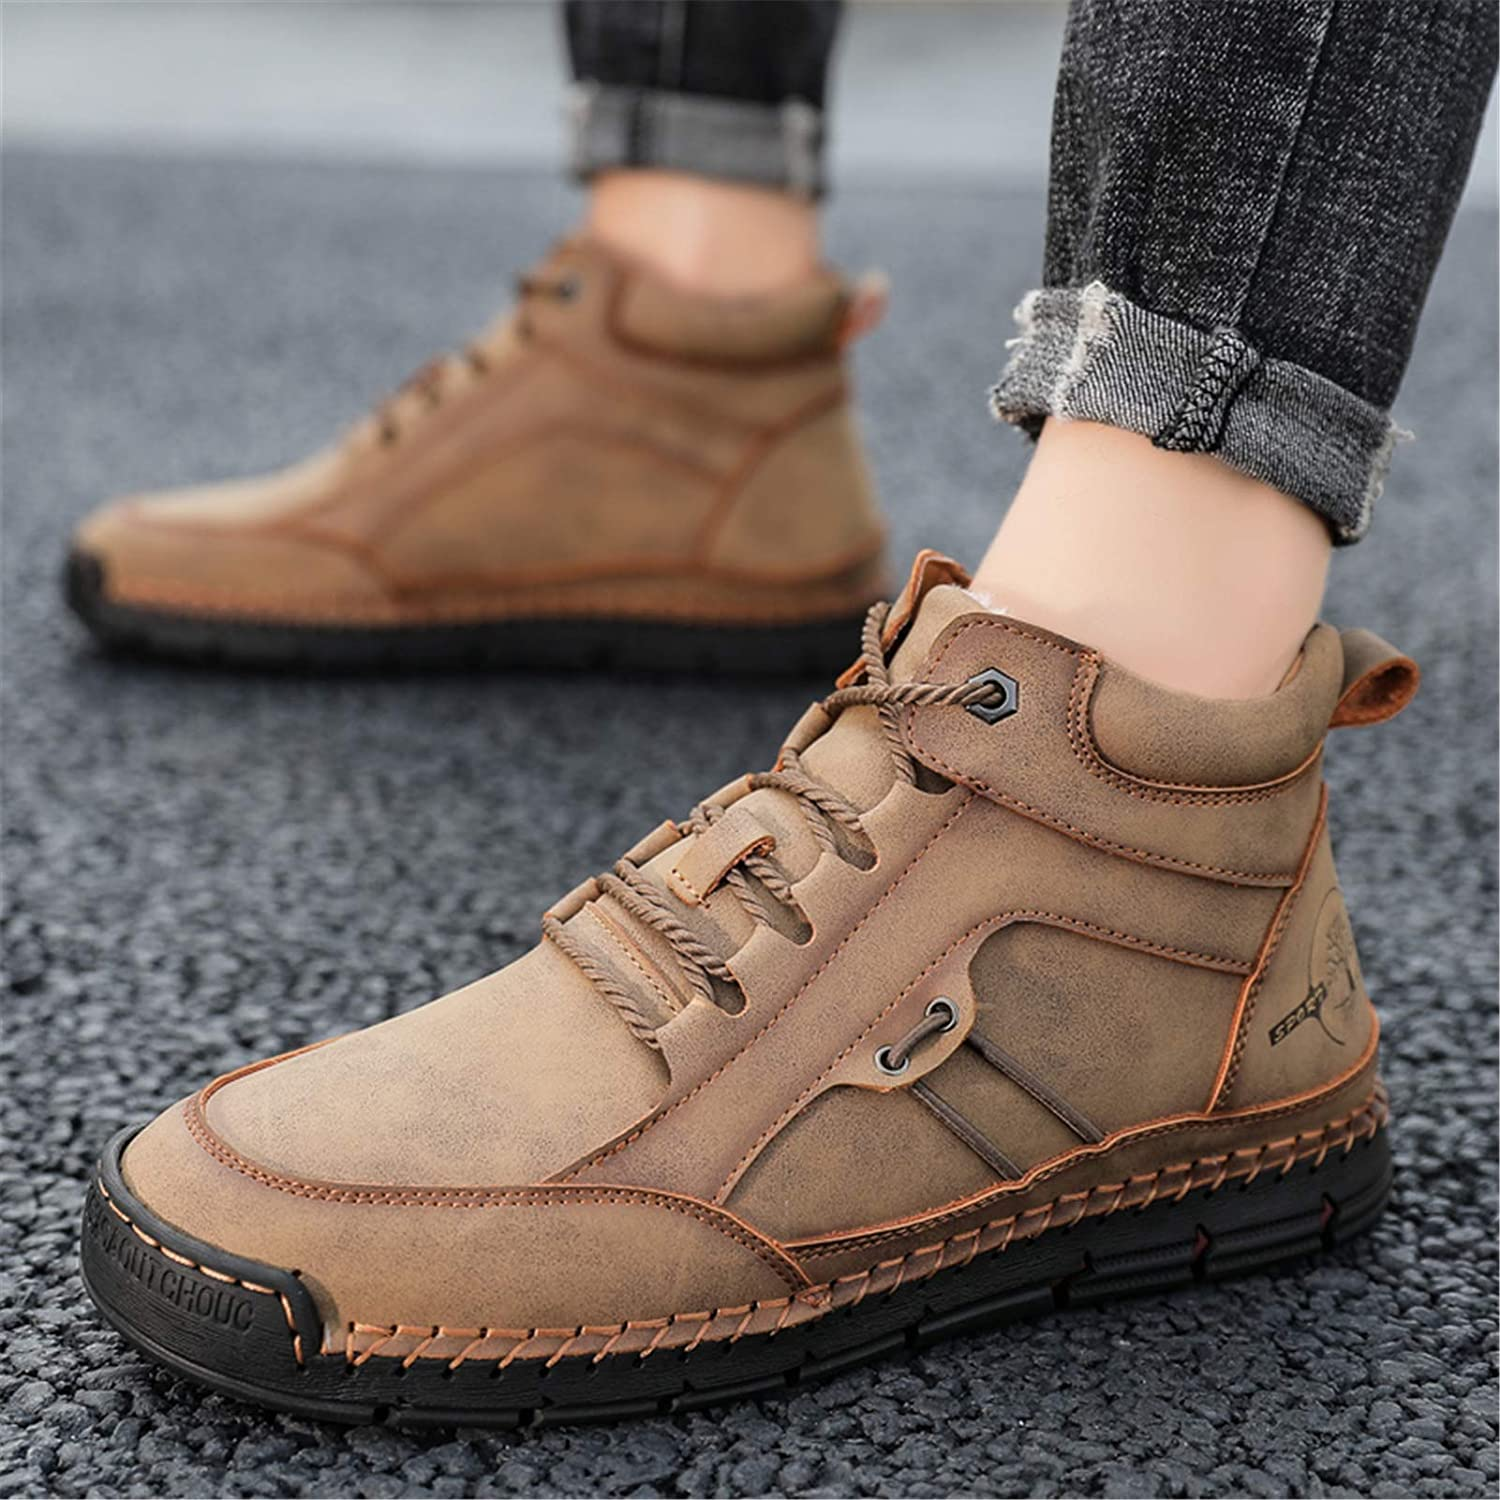 Govicta Mens Winter Boots Warm Faux Fur Lined Snow Boots Warterproof Chukka Boots Casual Walking Shoes for Outdoor